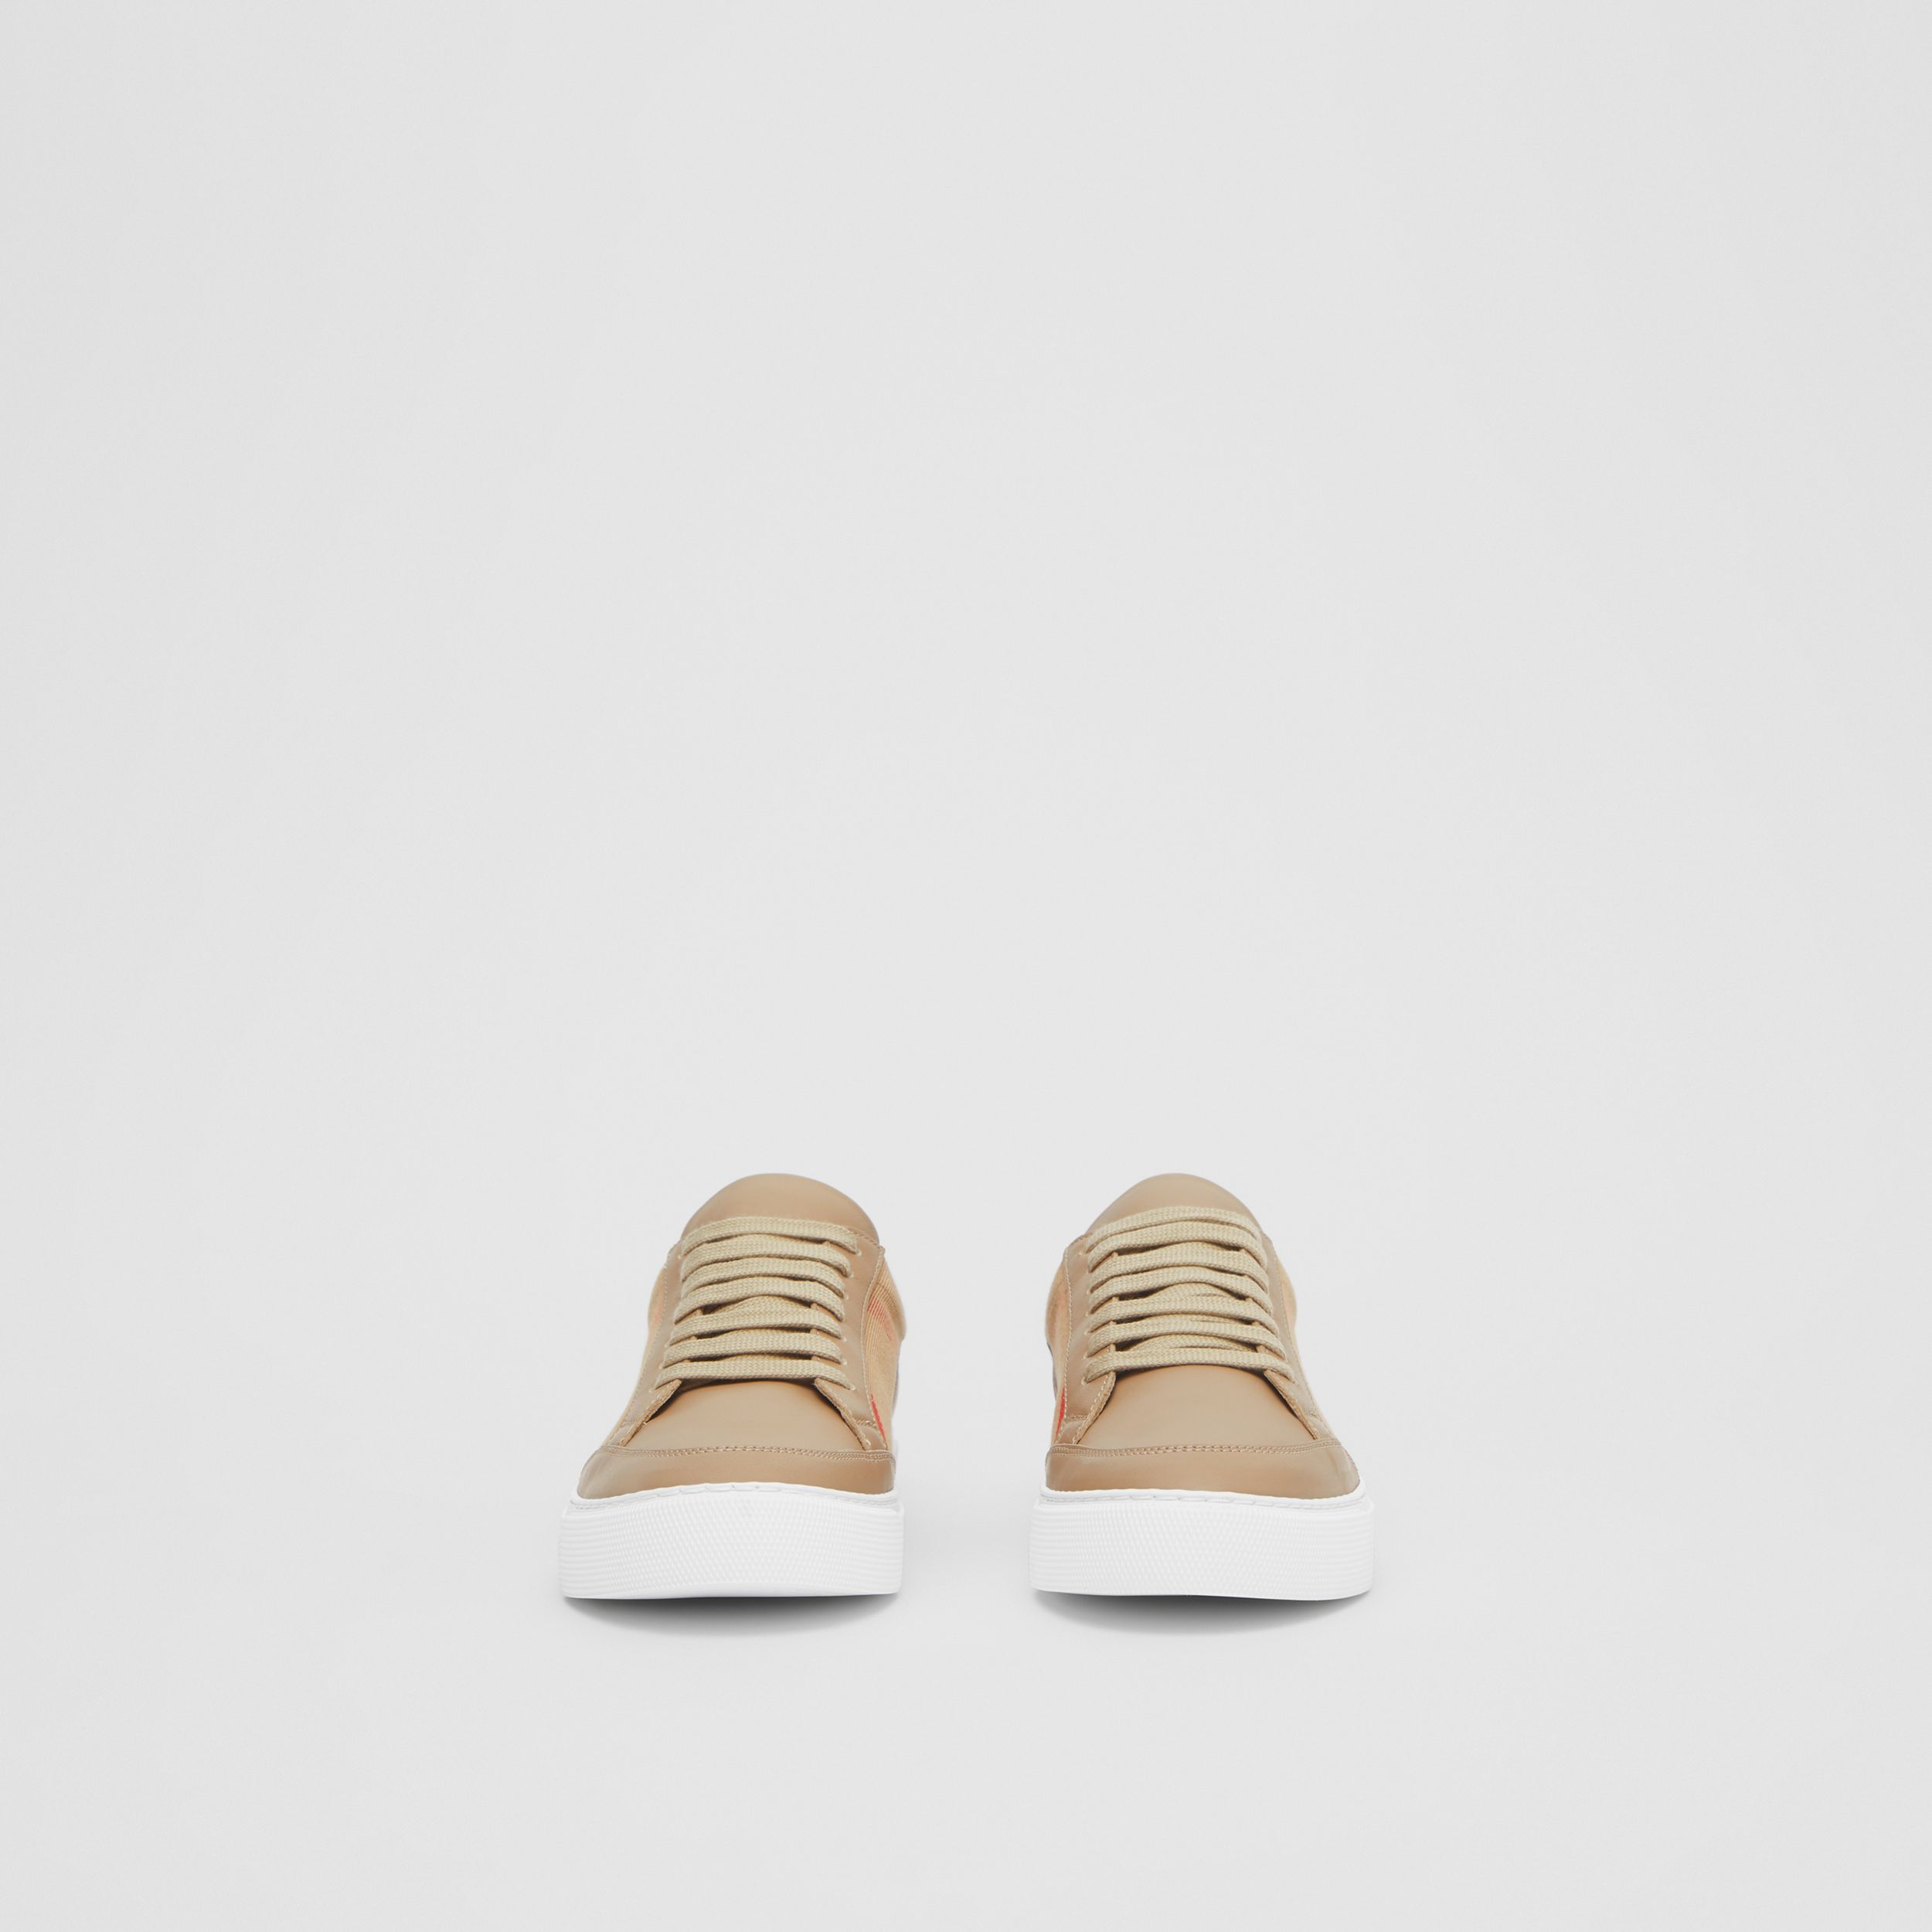 House Check and Leather Sneakers in Tan - Women | Burberry - 4